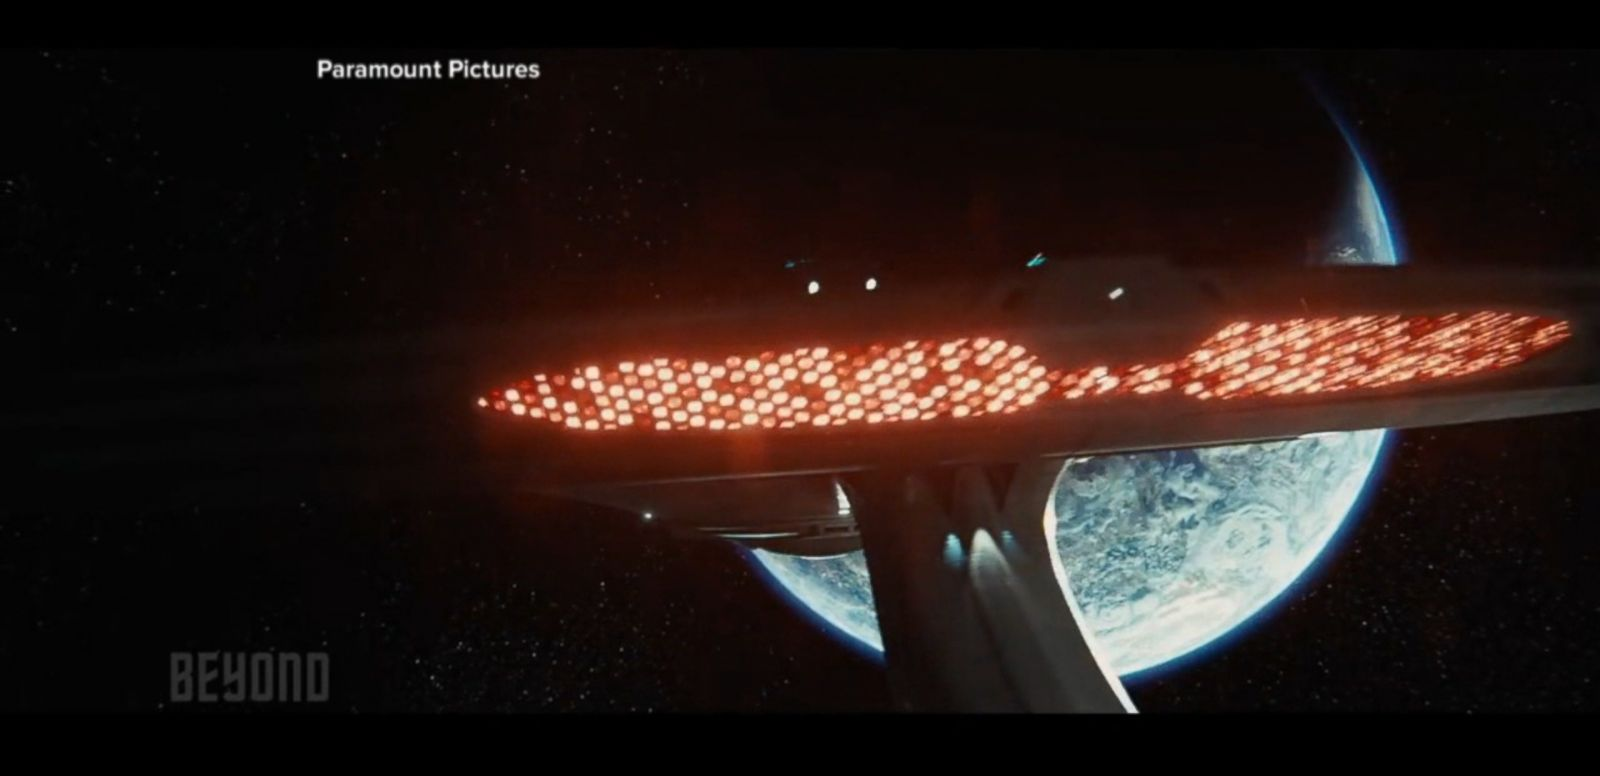 VIDEO: The third movie in the rebooted Star Trek franchise earned an estimated $59.6 million to open in first place.